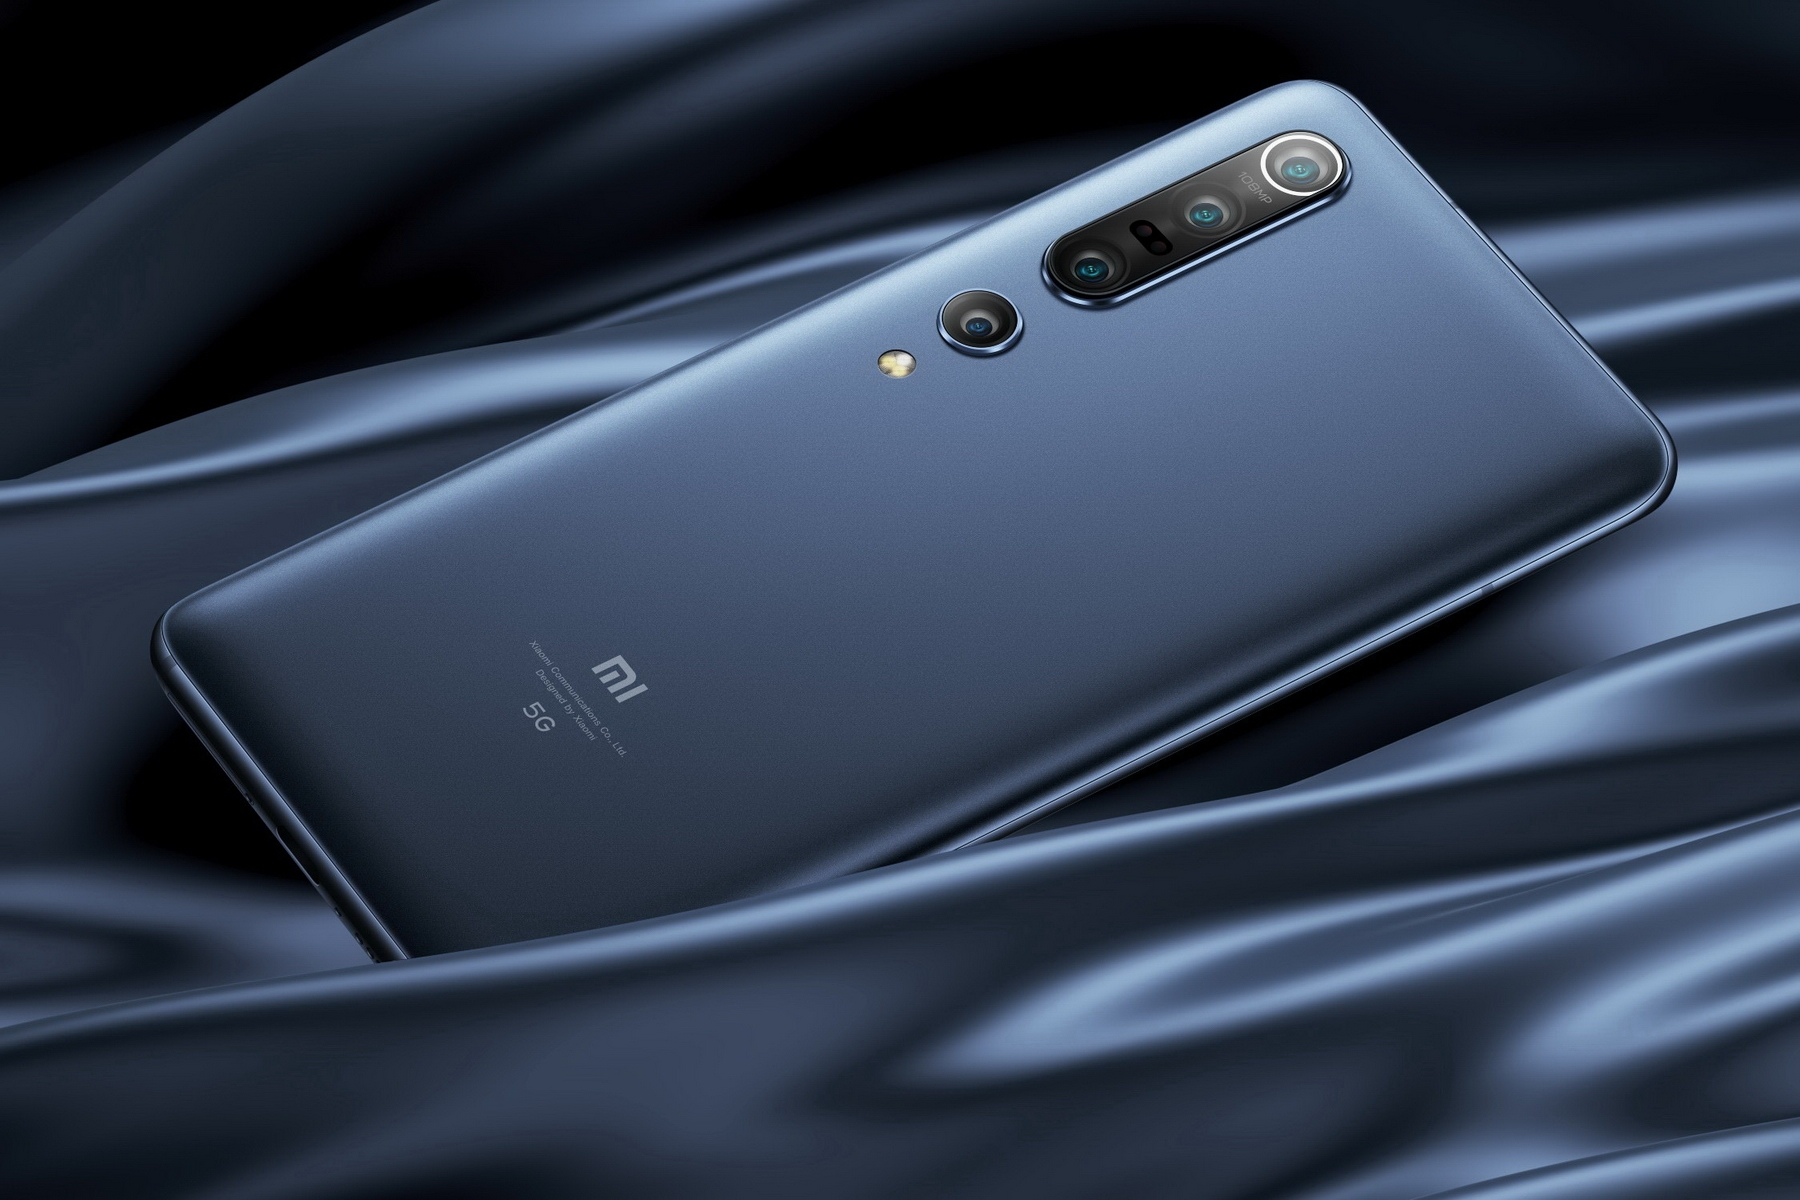 Xiaomi Mi 10 - specifications and reviews